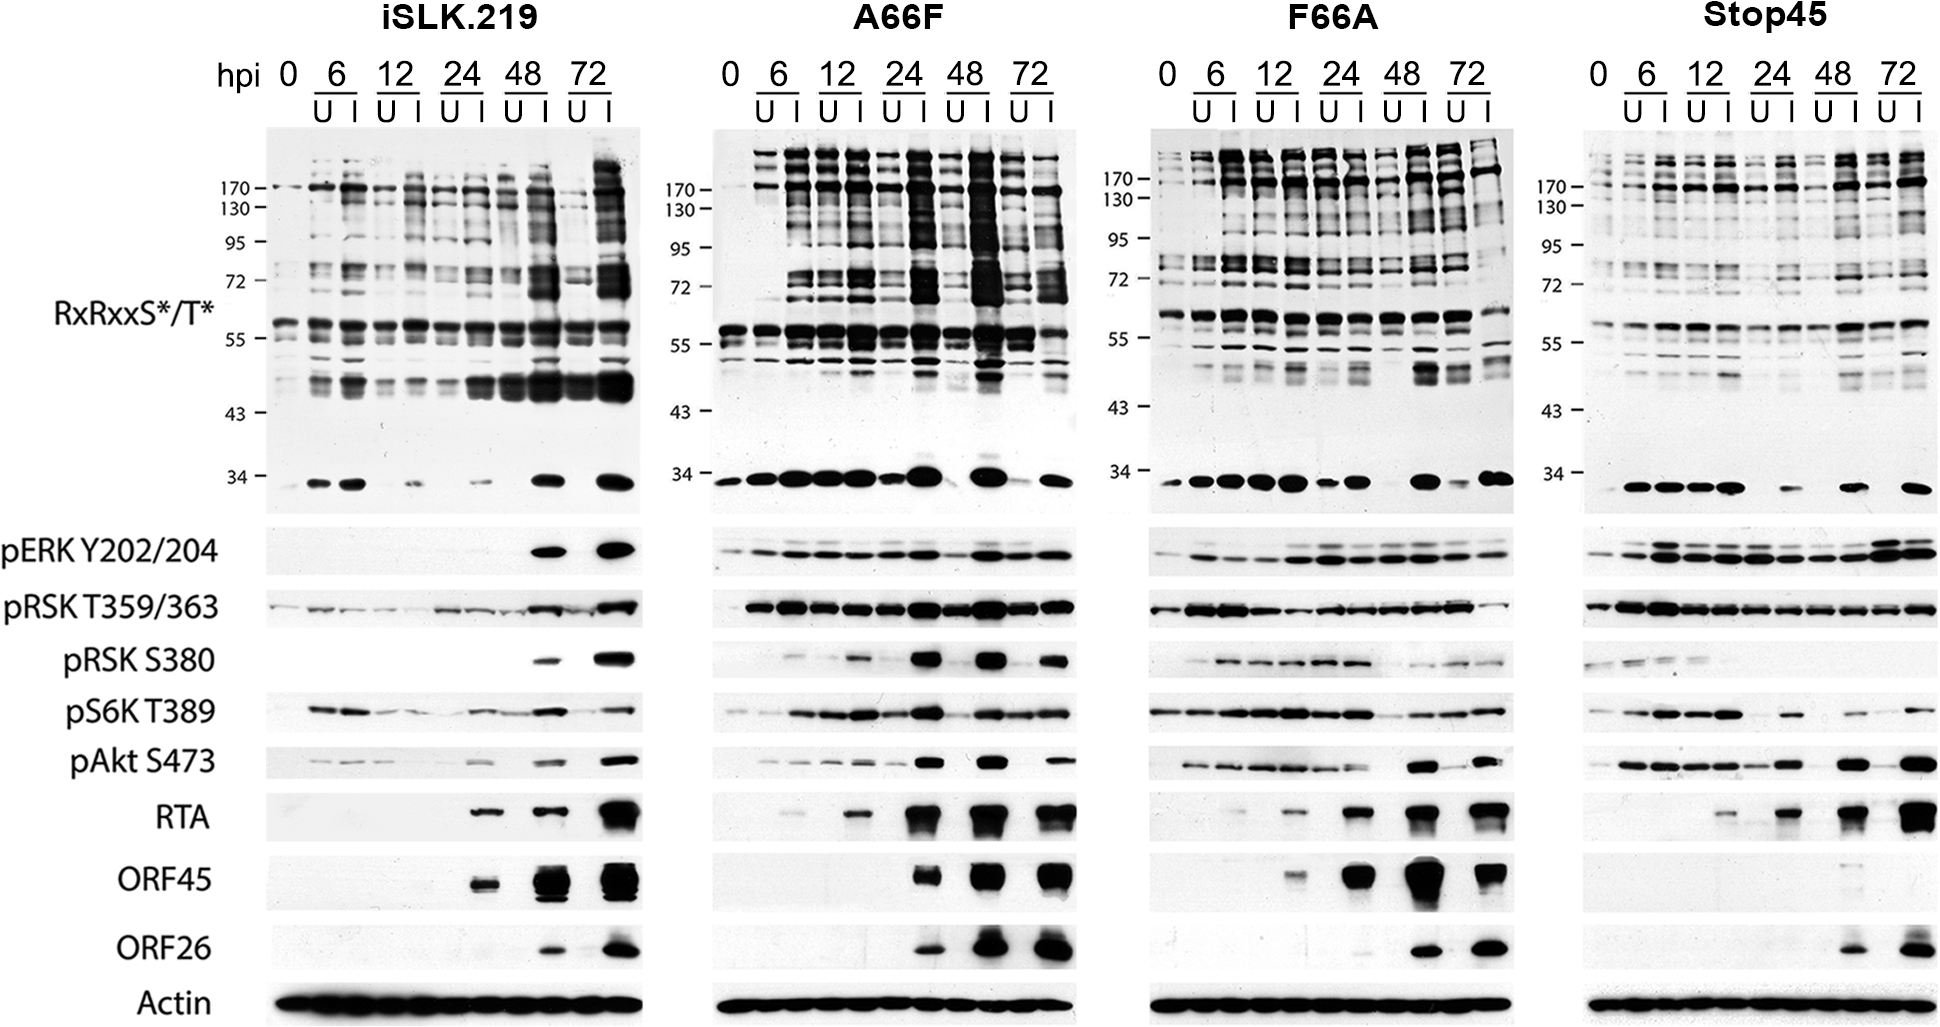 The increased phosphorylation of putative RSK substrates induced by KSHV lytic reactivation is dramatically reduced by ORF45 mutation or deletion.